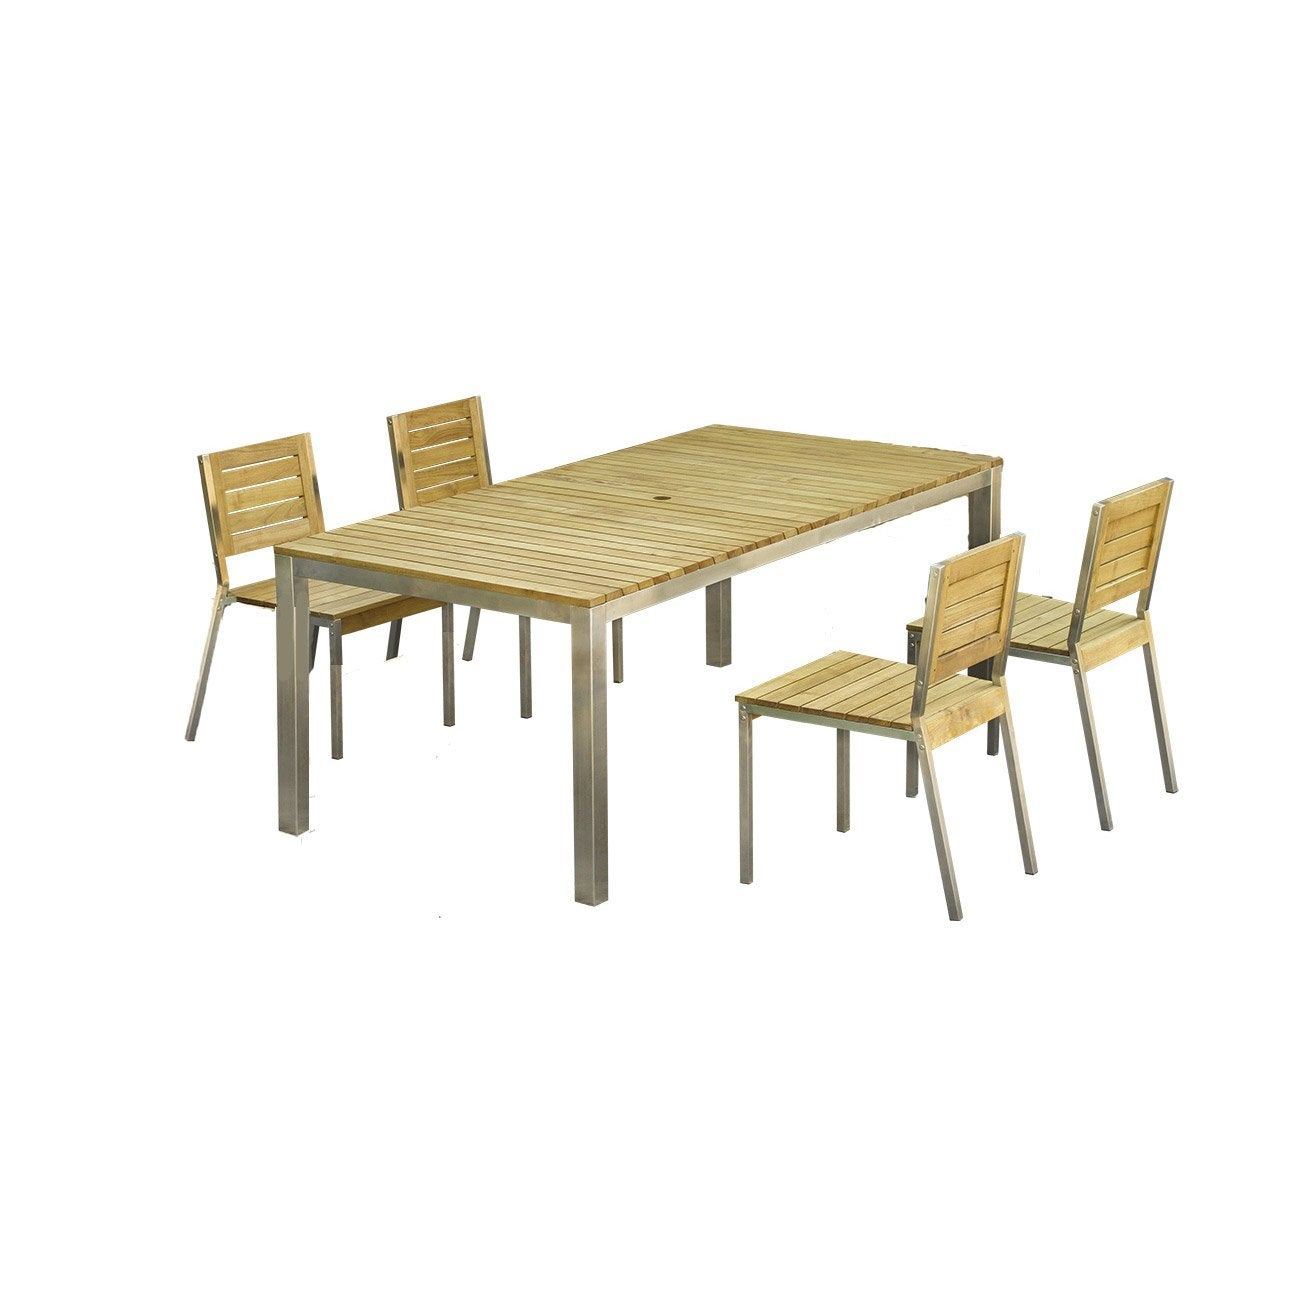 Salon de jardin robinox bois naturel 1 table 200x100 2 for Eclairage de jardin leroy merlin